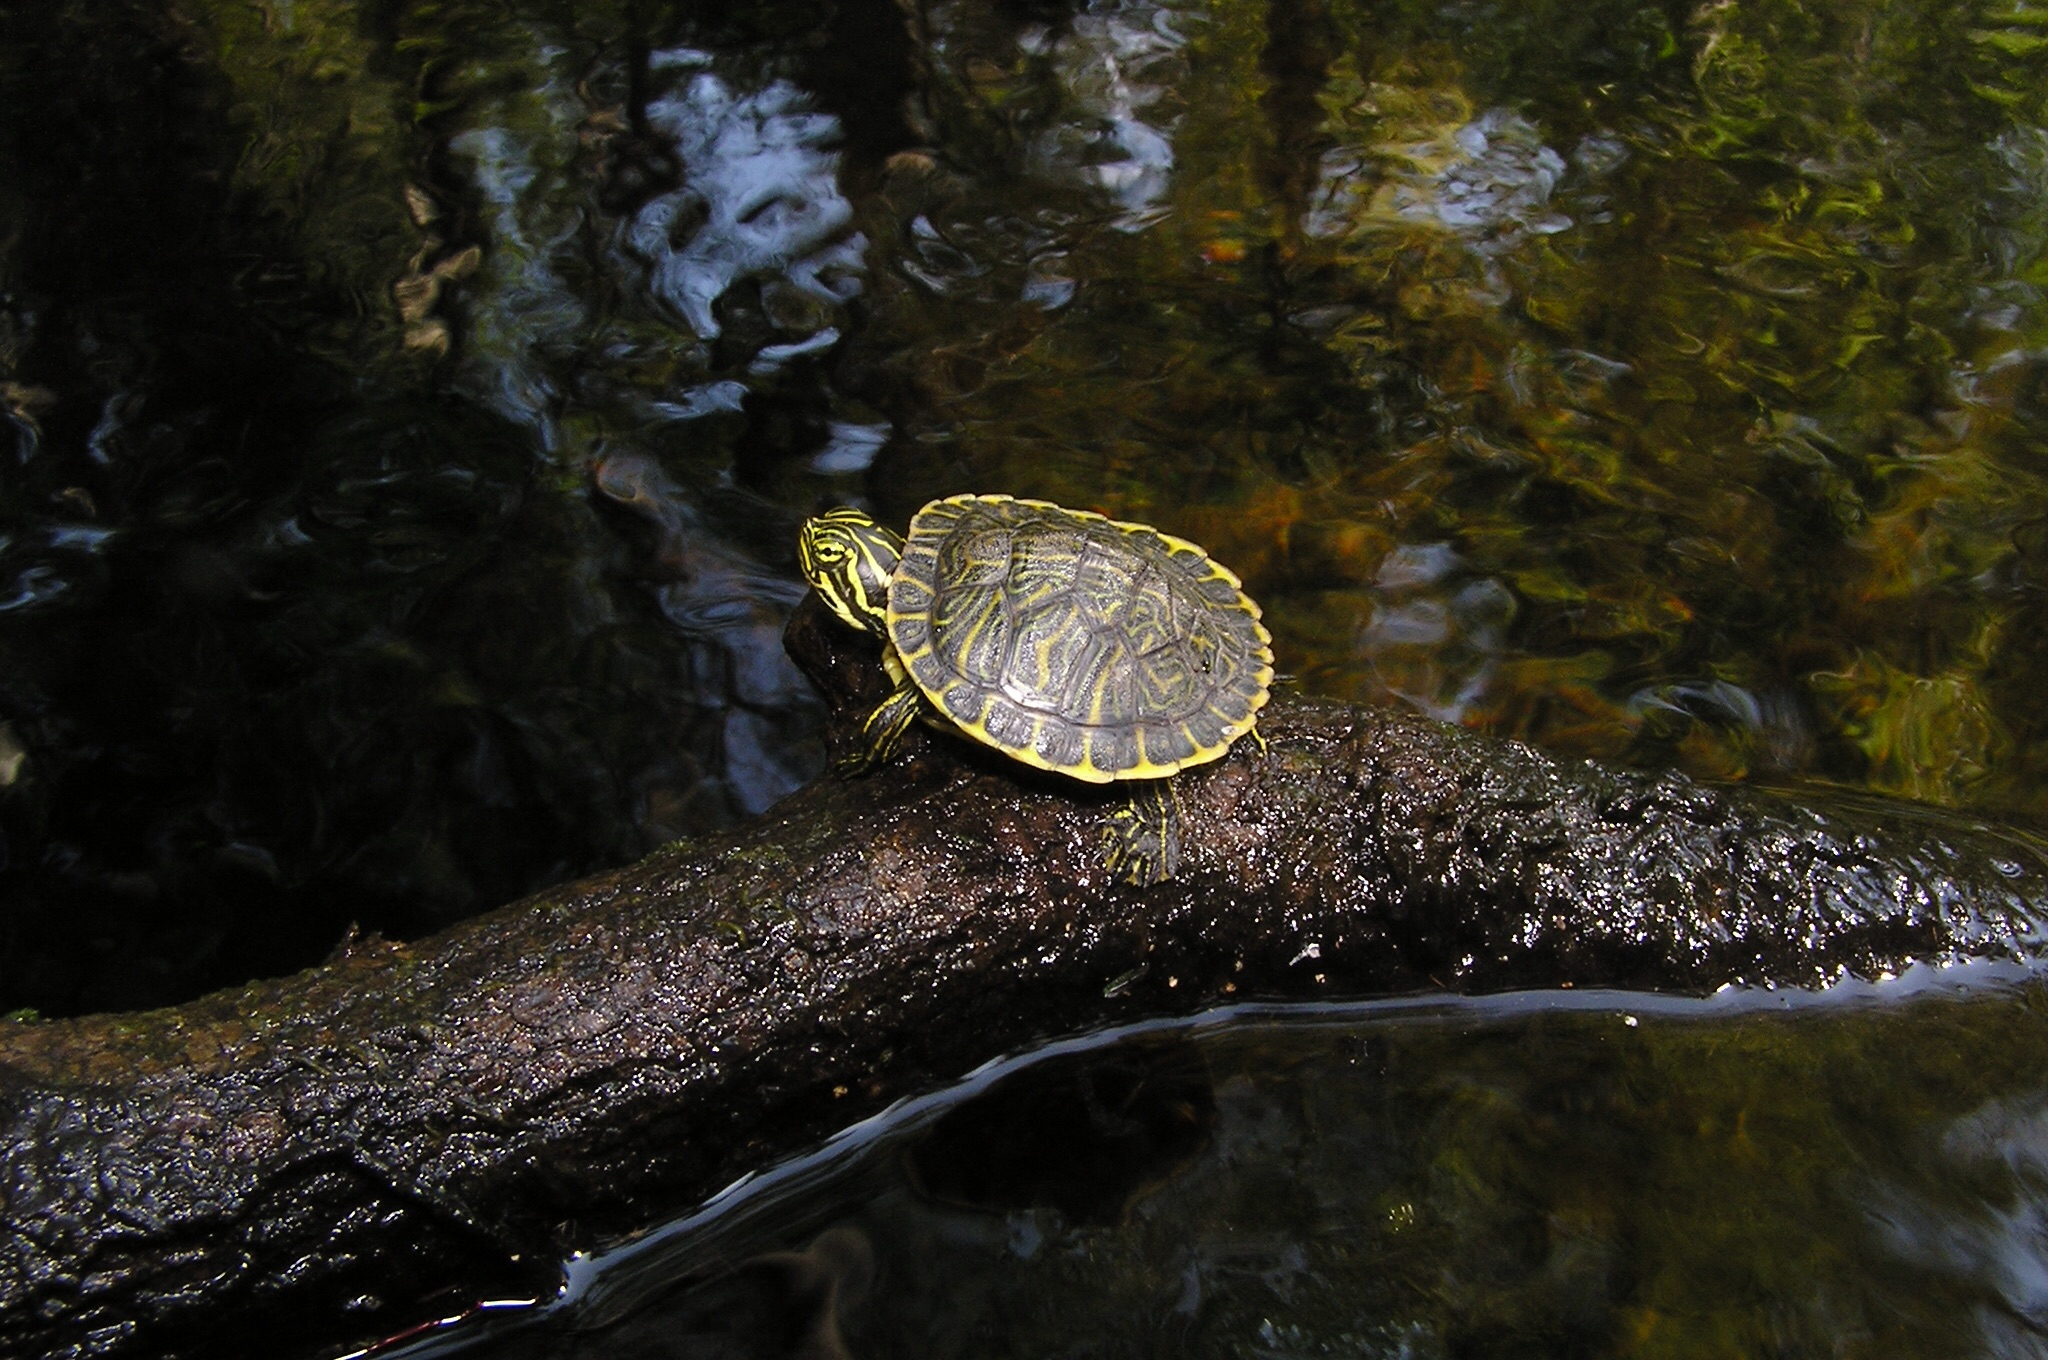 Last year's baby peninsula cooter, approximately two inches long.